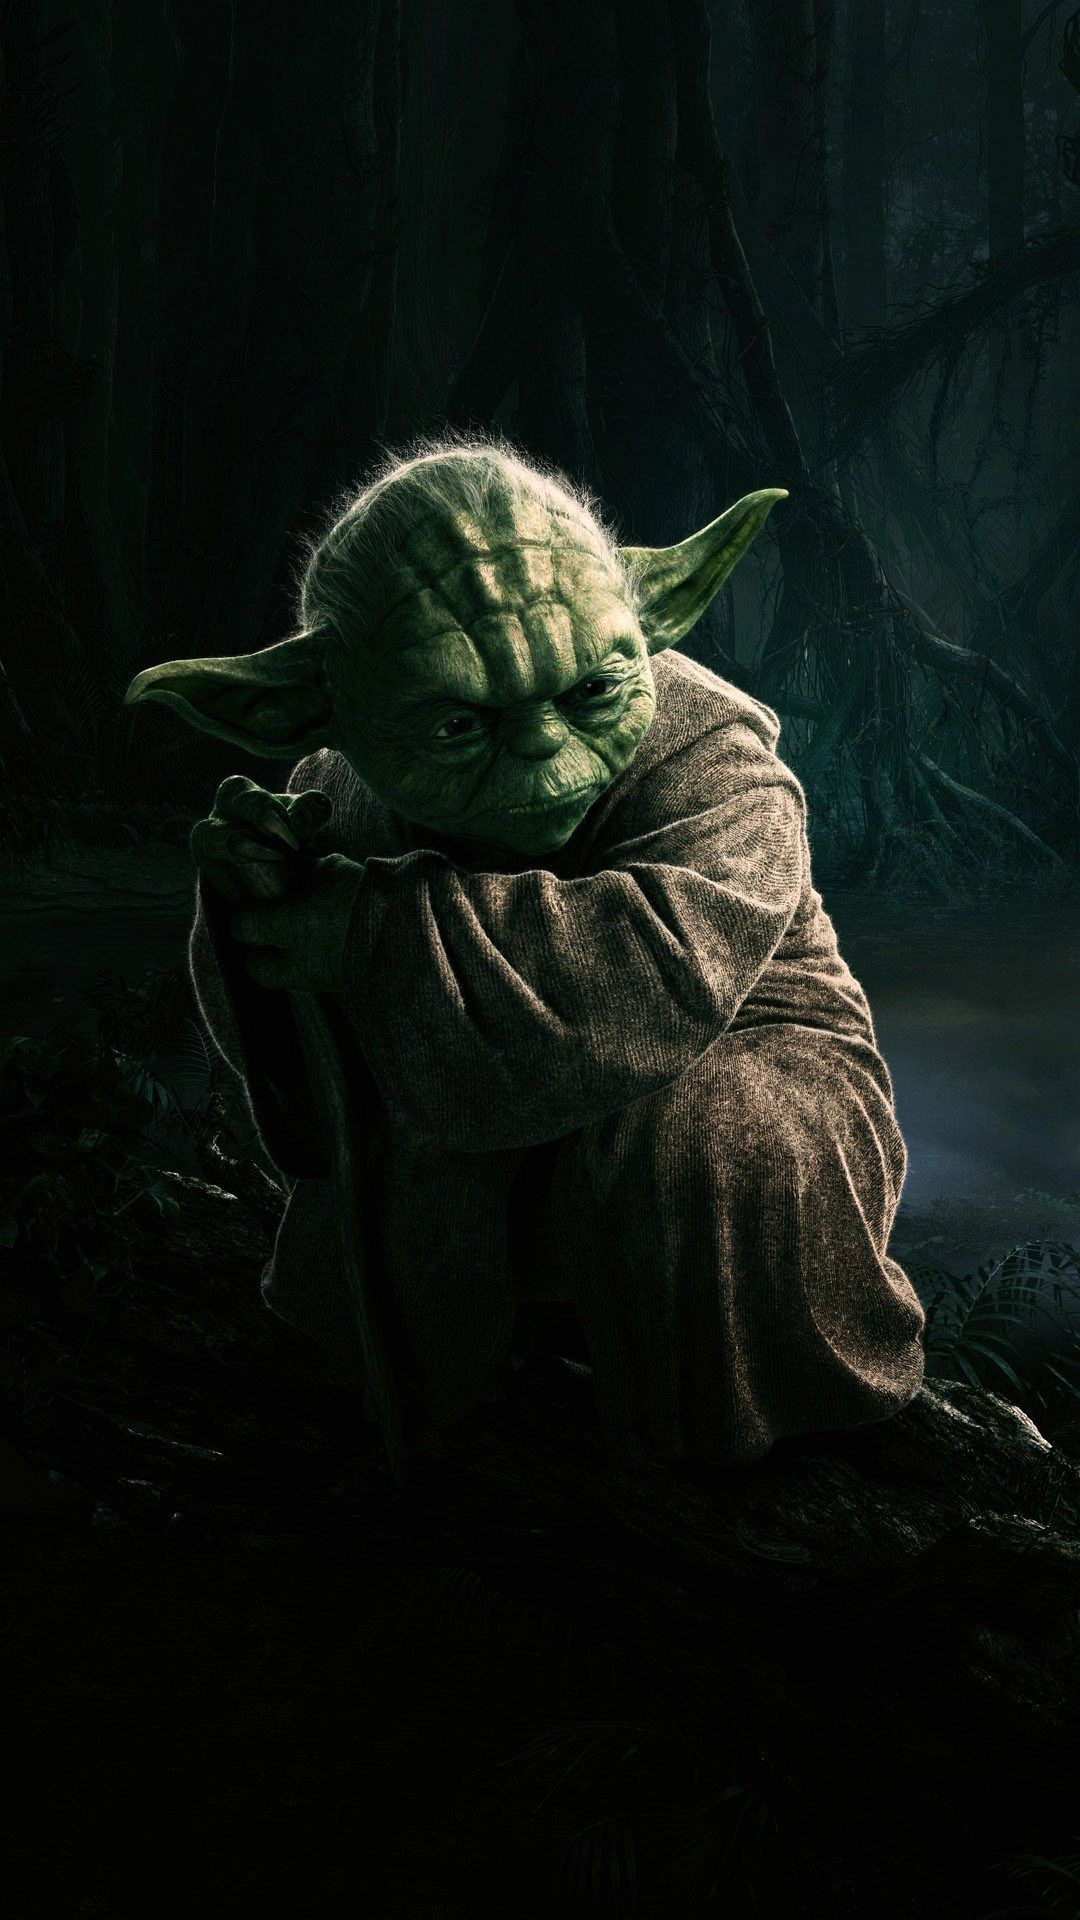 Iphone wallpaper yoda - Wallpaper Full Hd 1080 X 1920 Smartphone Yoda 1080 X 1920 Full